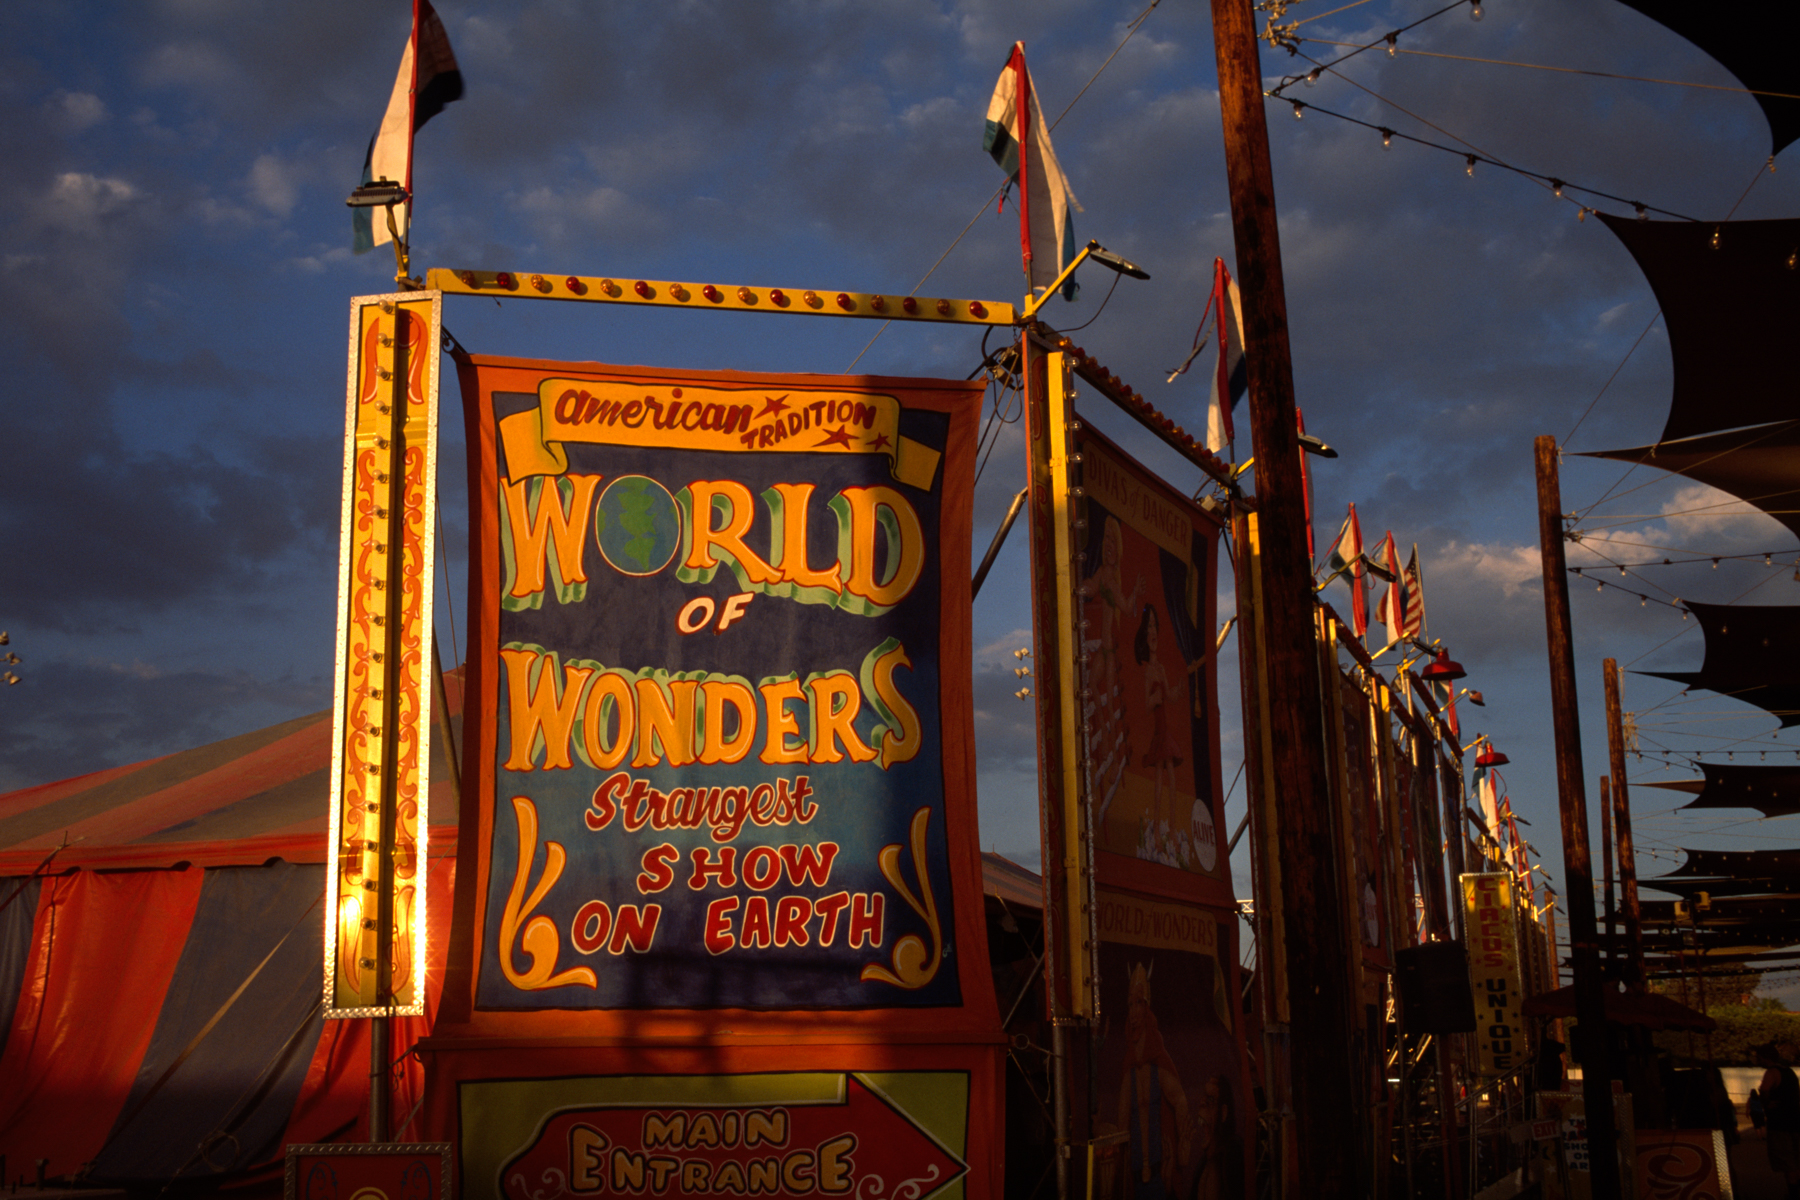 The World of Wonders sideshow